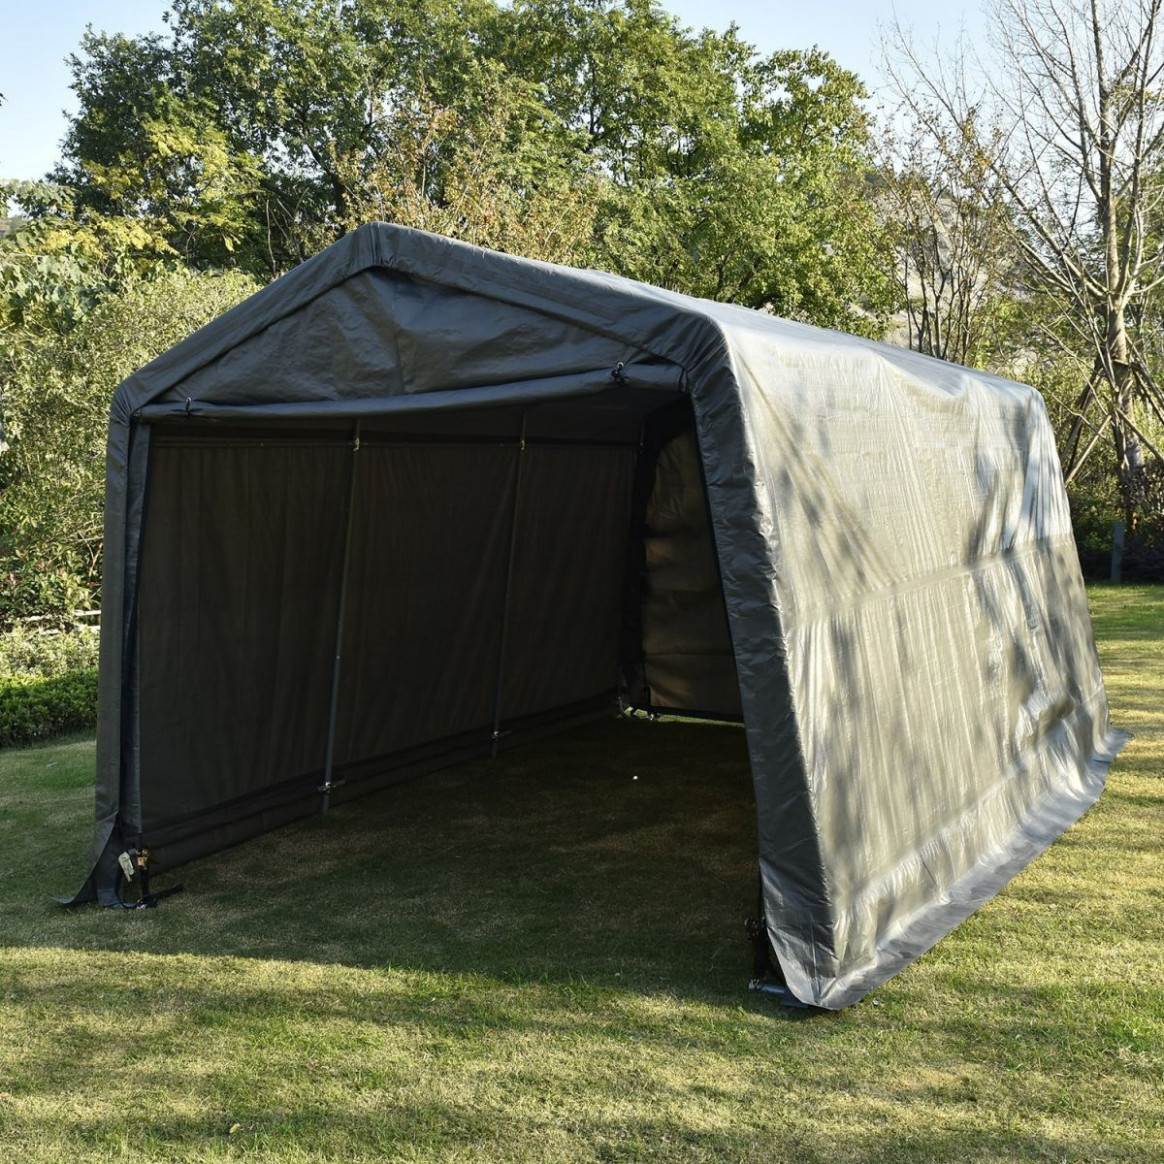 11 Portable Carport Shelters to Take Care of Your Car